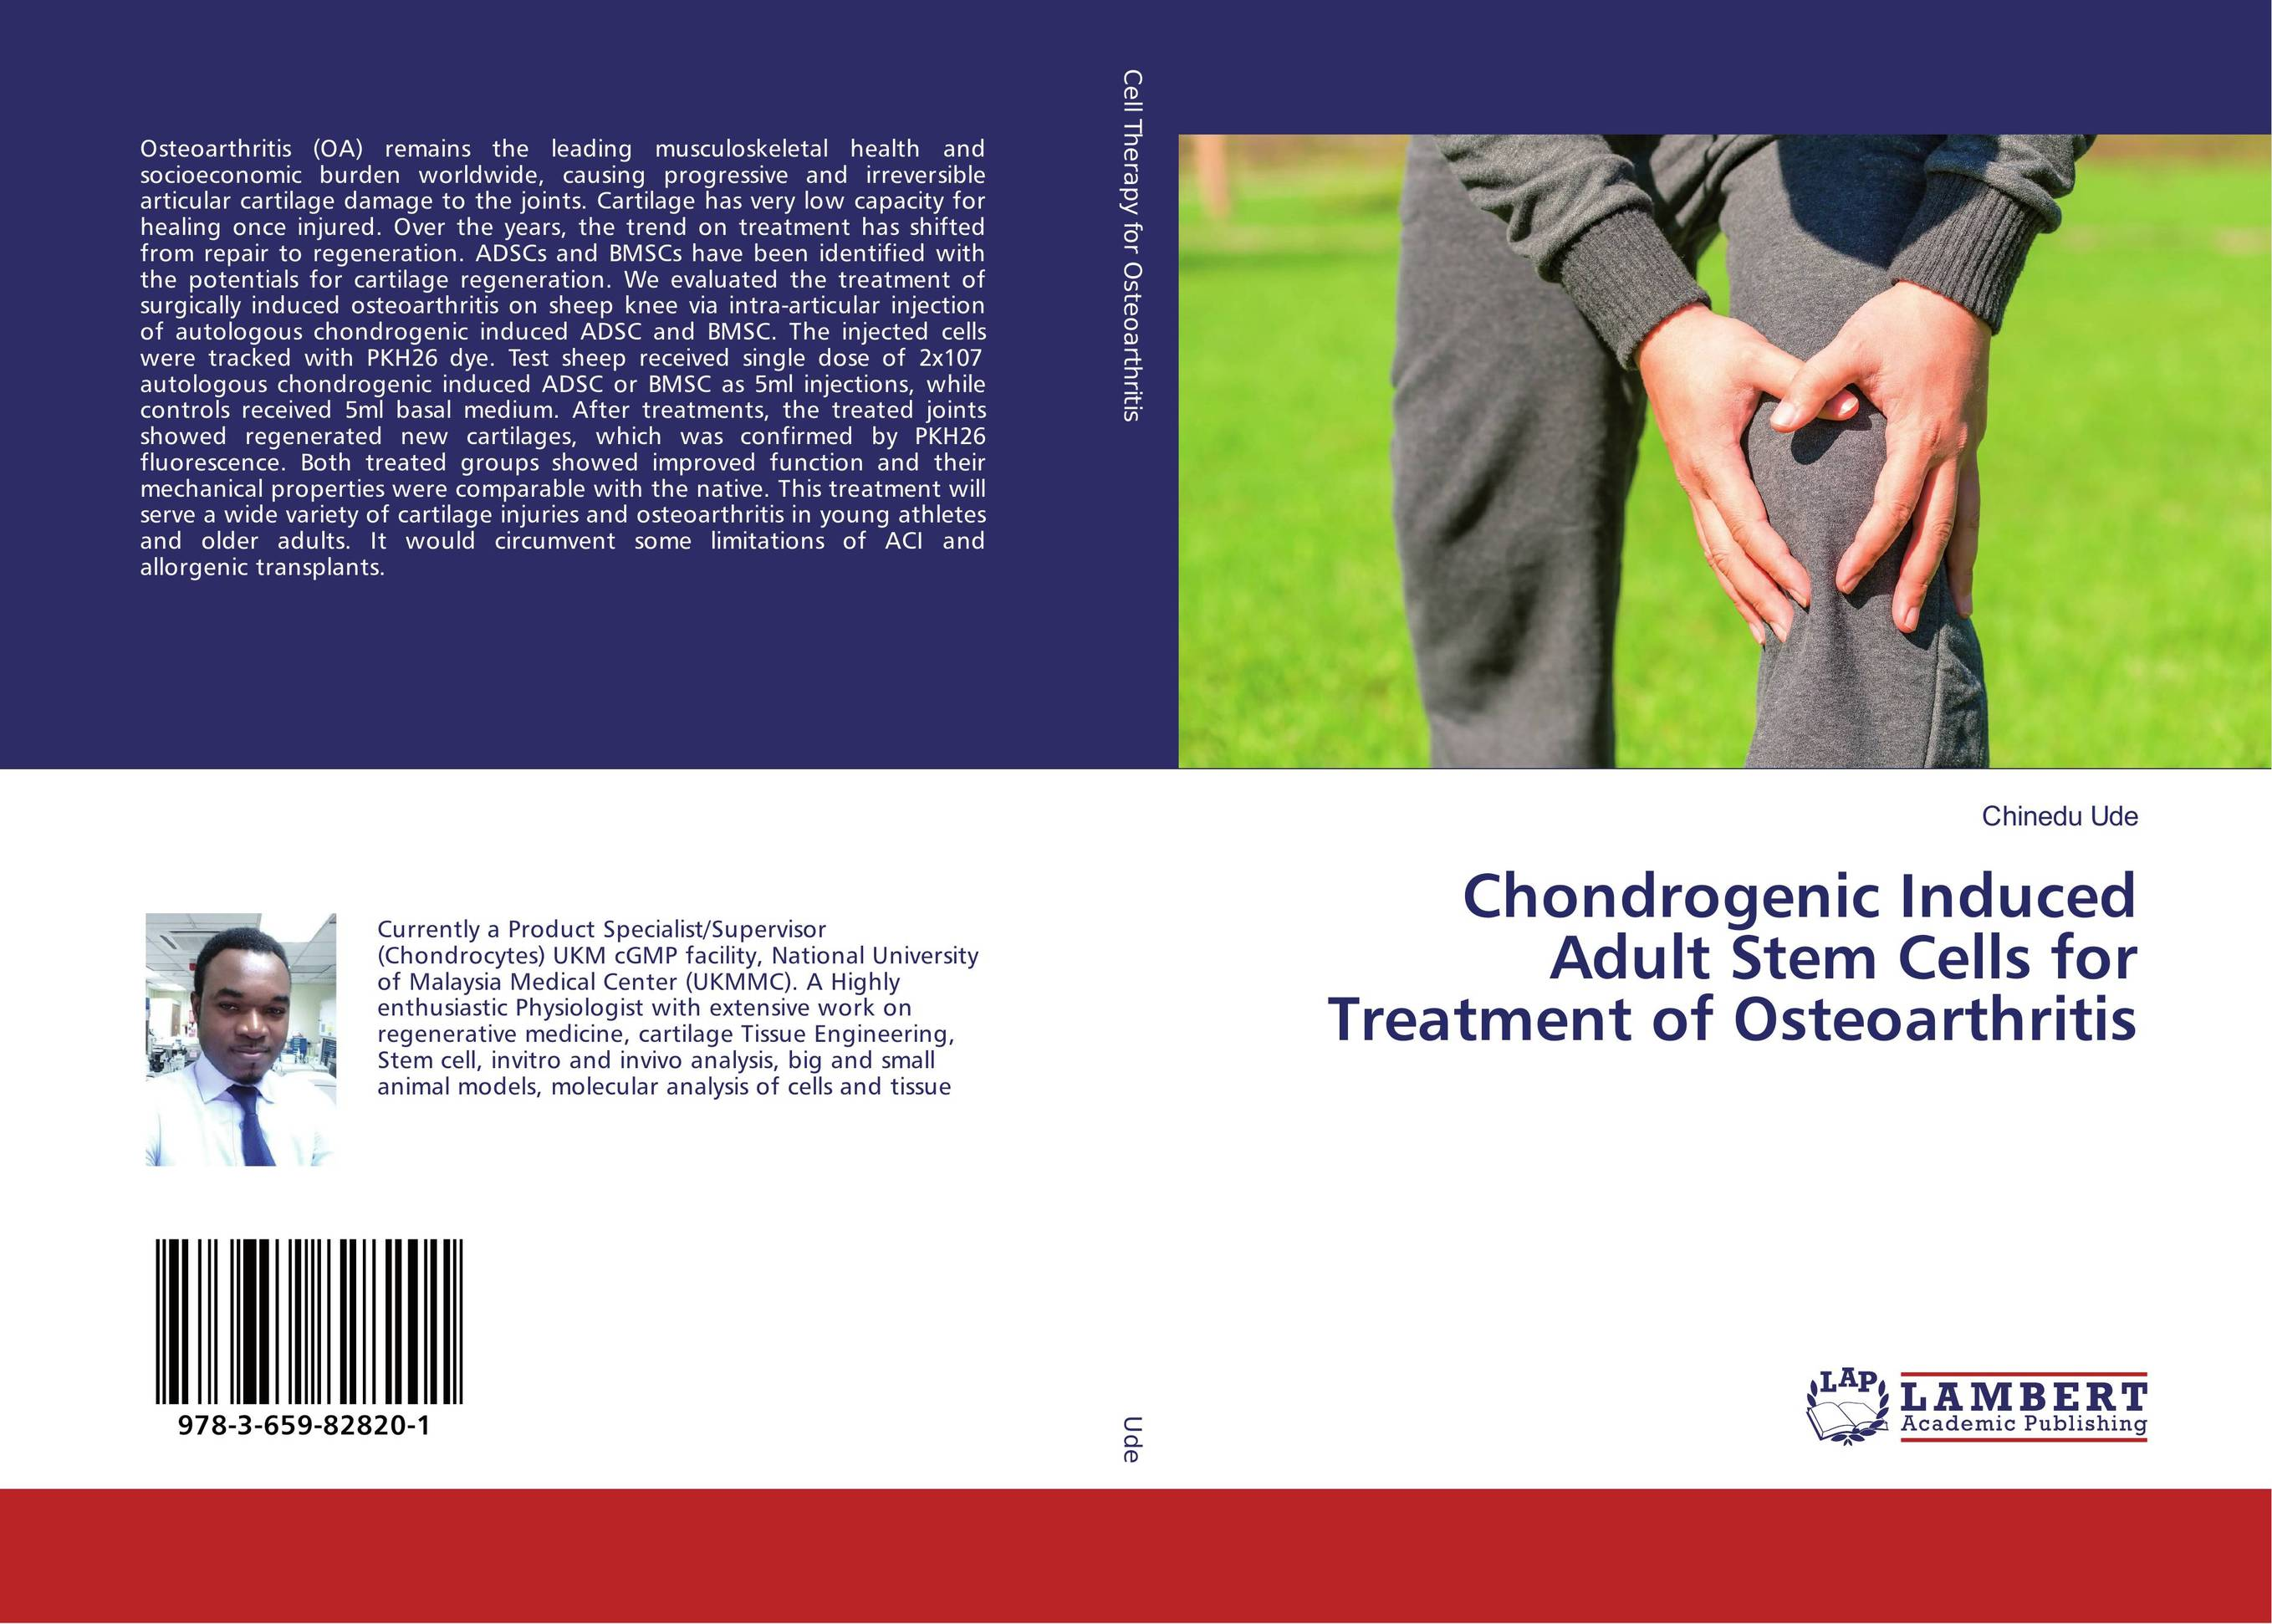 Chondrogenic Induced Adult Stem Cells for Treatment of Osteoarthritis